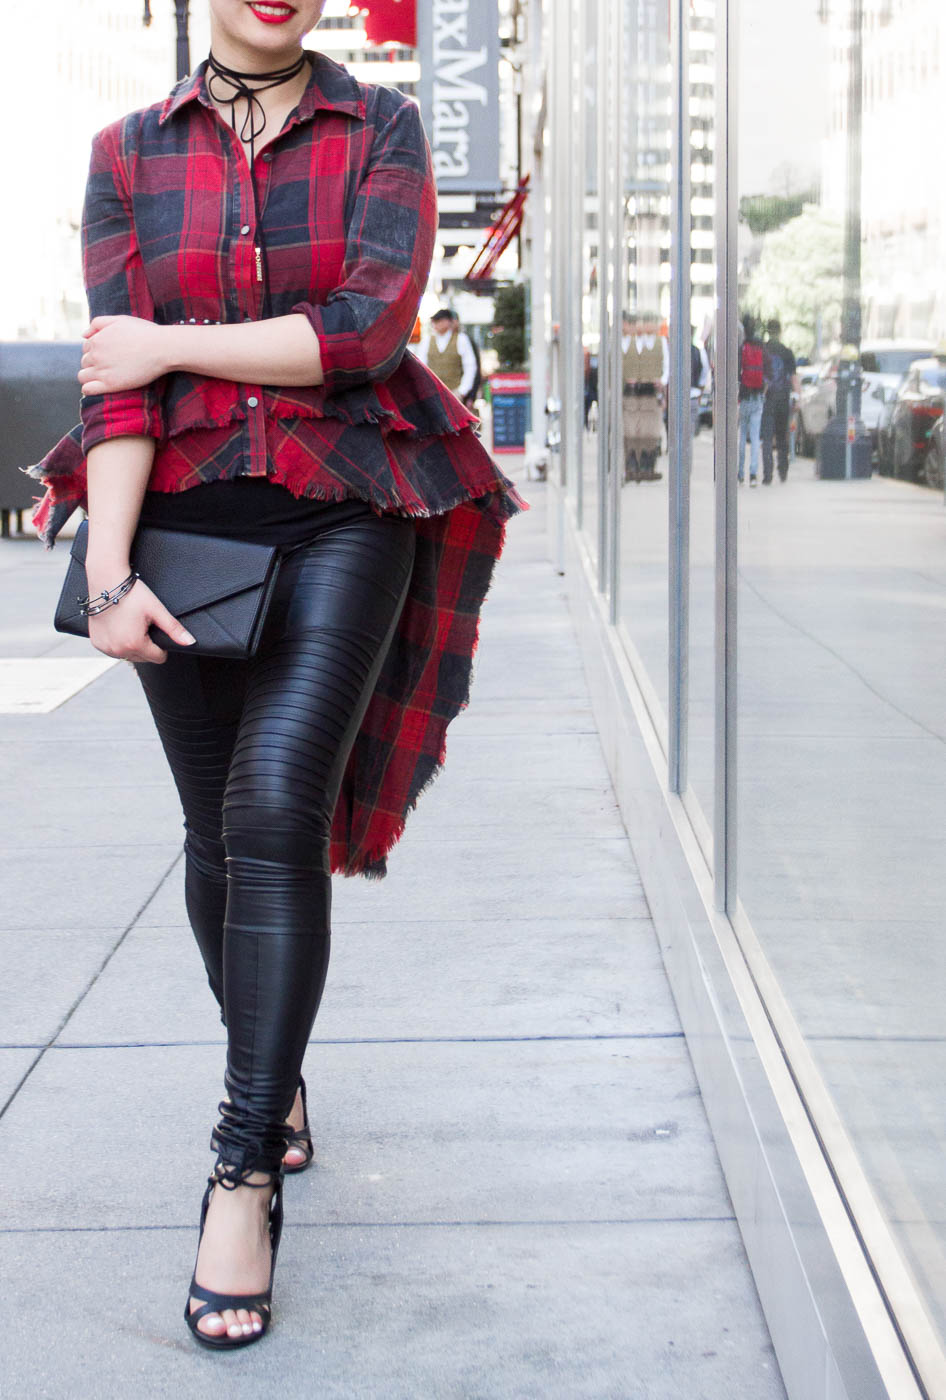 Zara Plaid Shirt, Cuyana Envelope Clutch, & Plush Moto Leggings | The Chic Diary